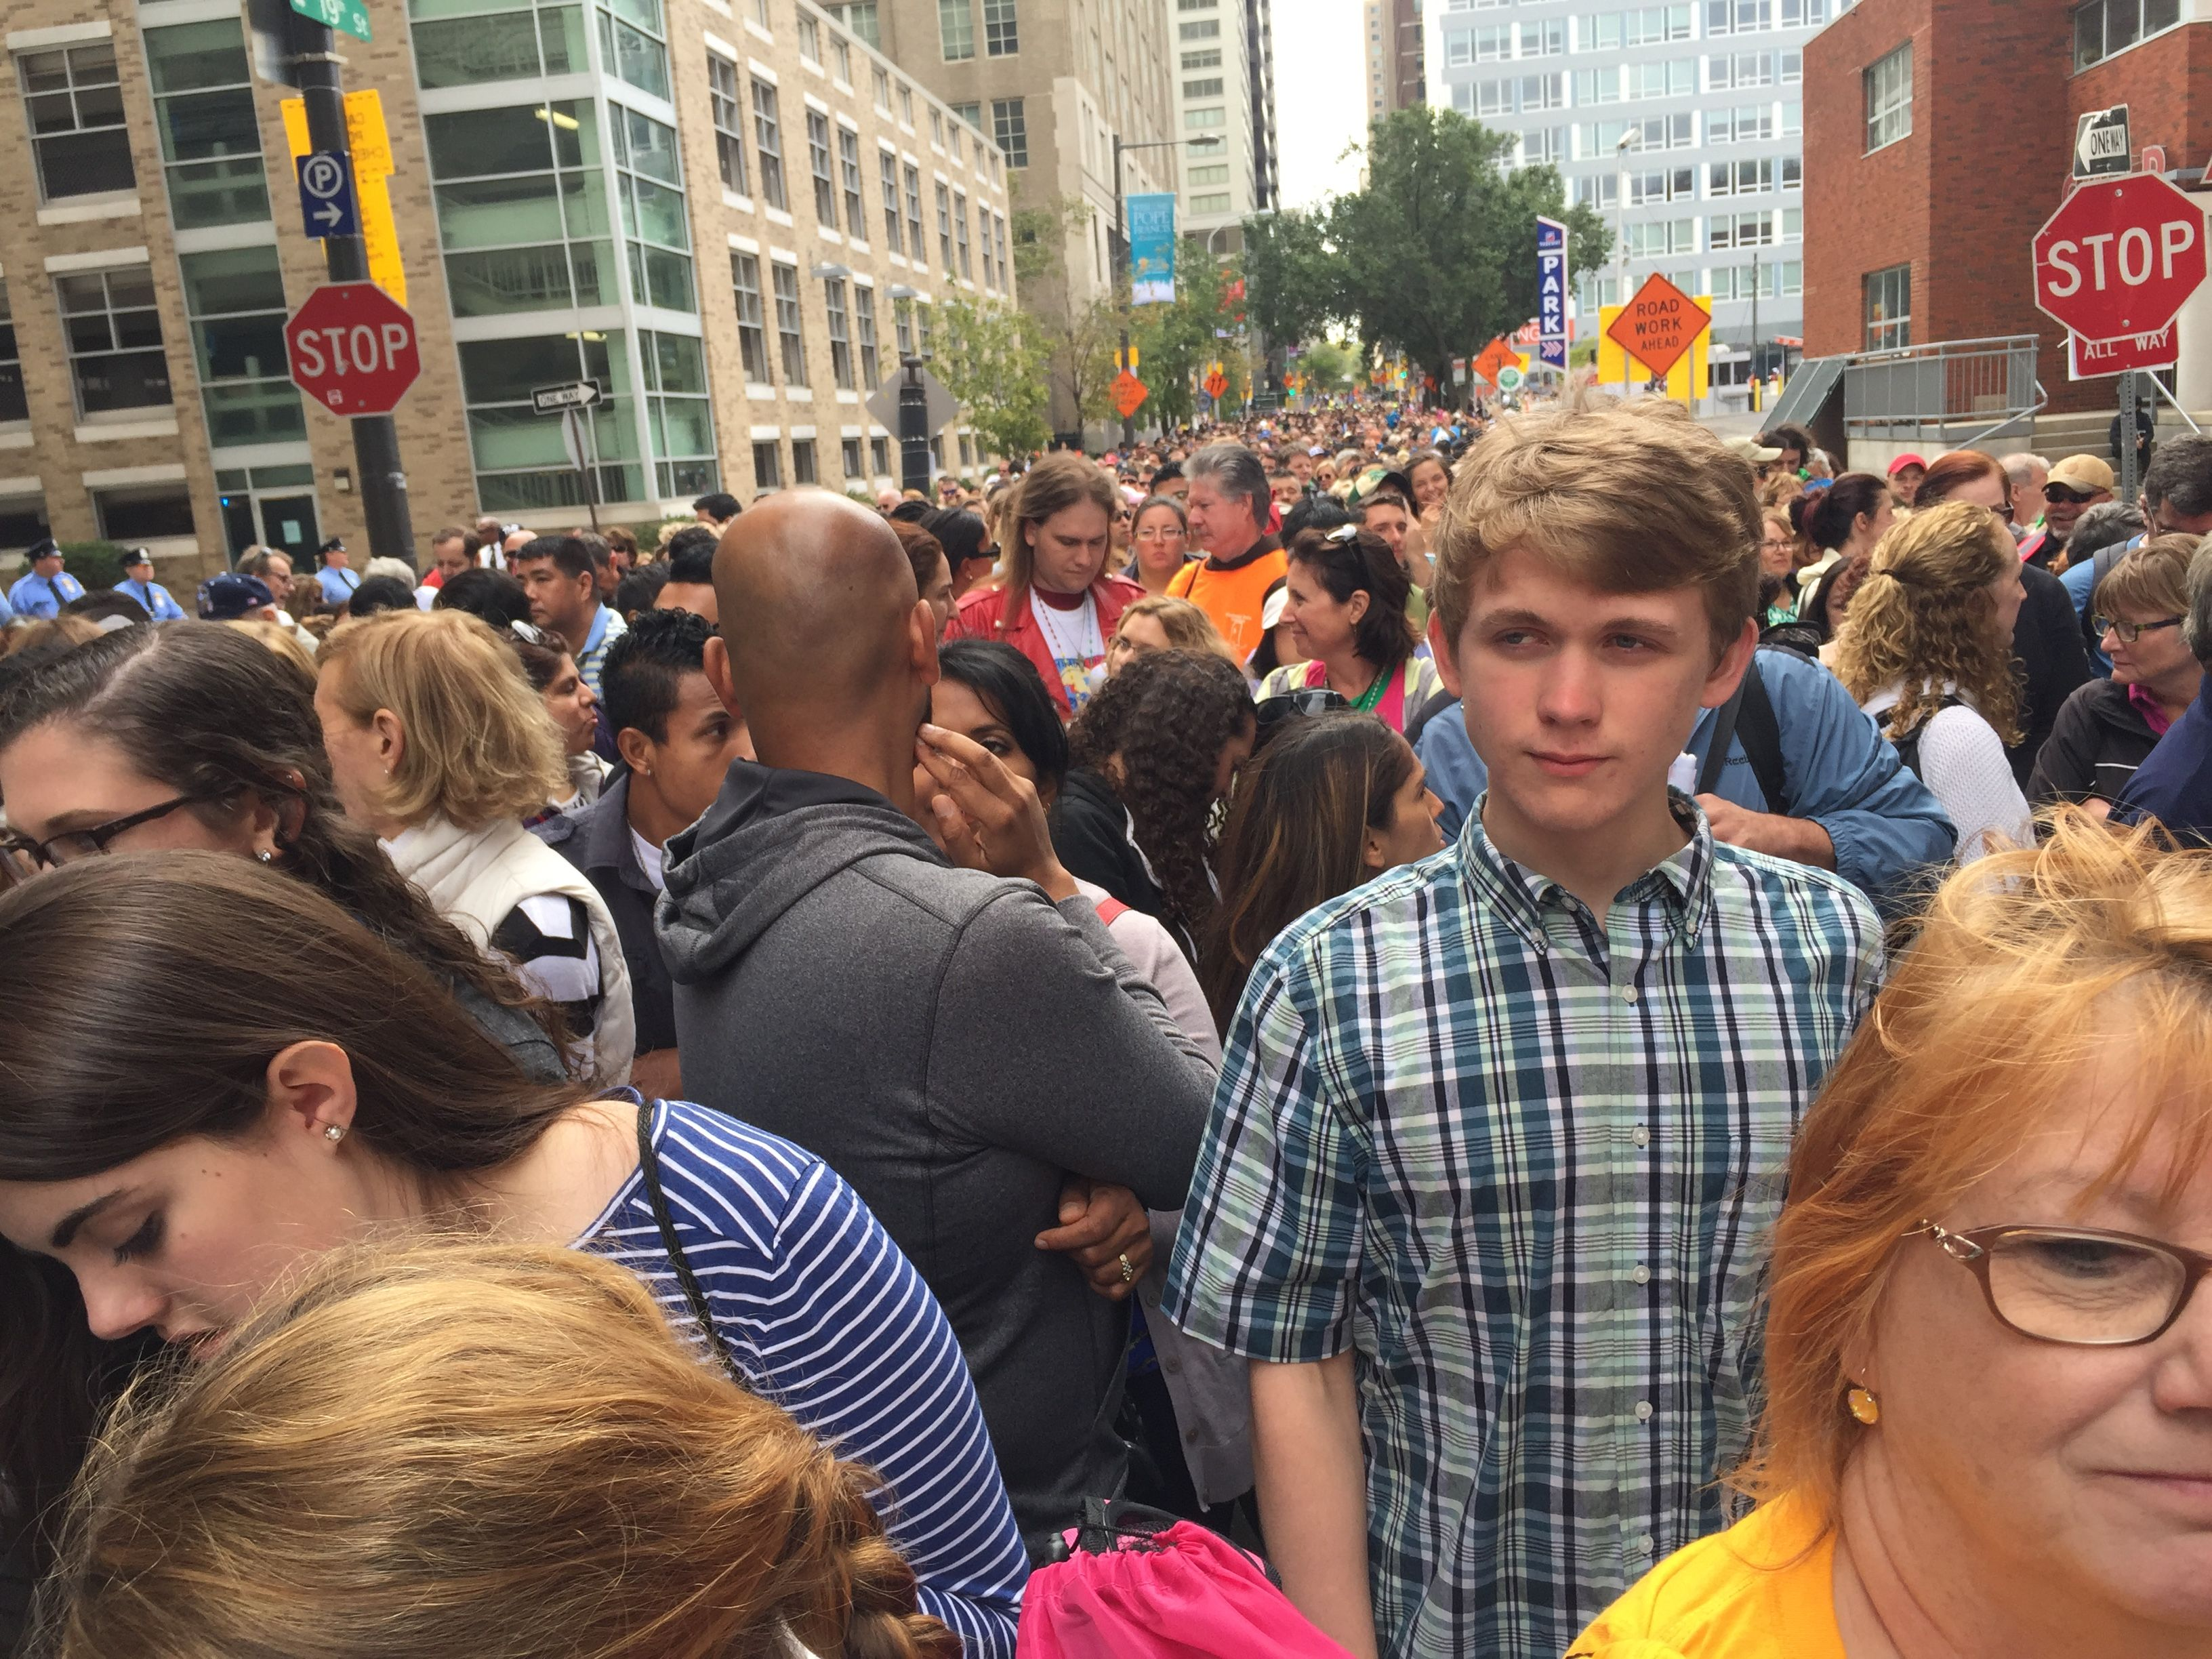 A view of the hundreds of people on line waiting to get in to the papal mass area in Philly.